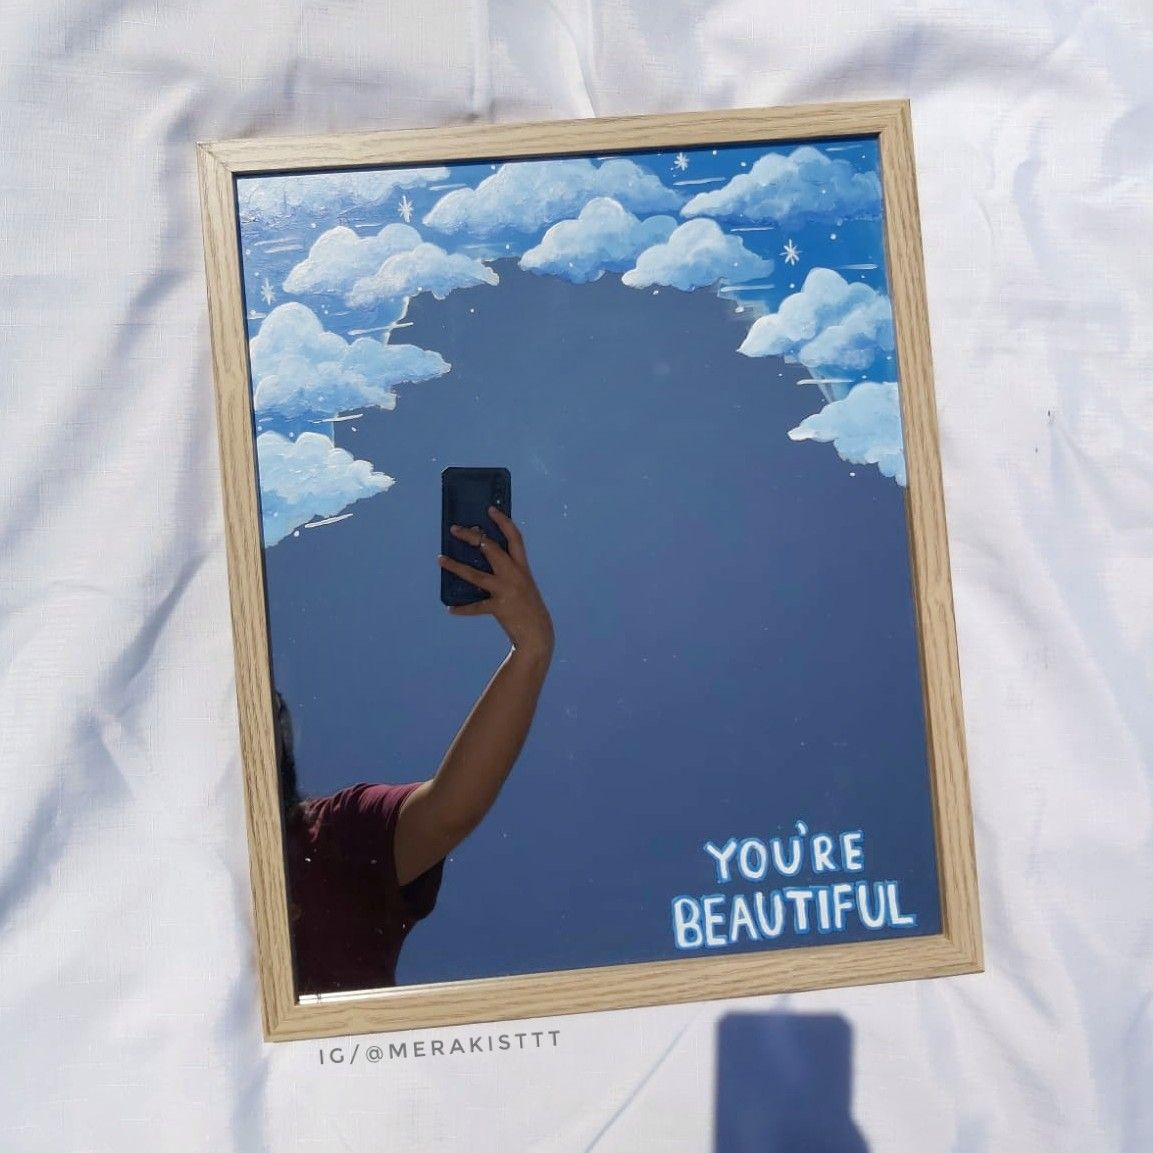 Clouds On Mirror In 2020 Mirror Painting Painted Mirror Art Amazing Art Painting